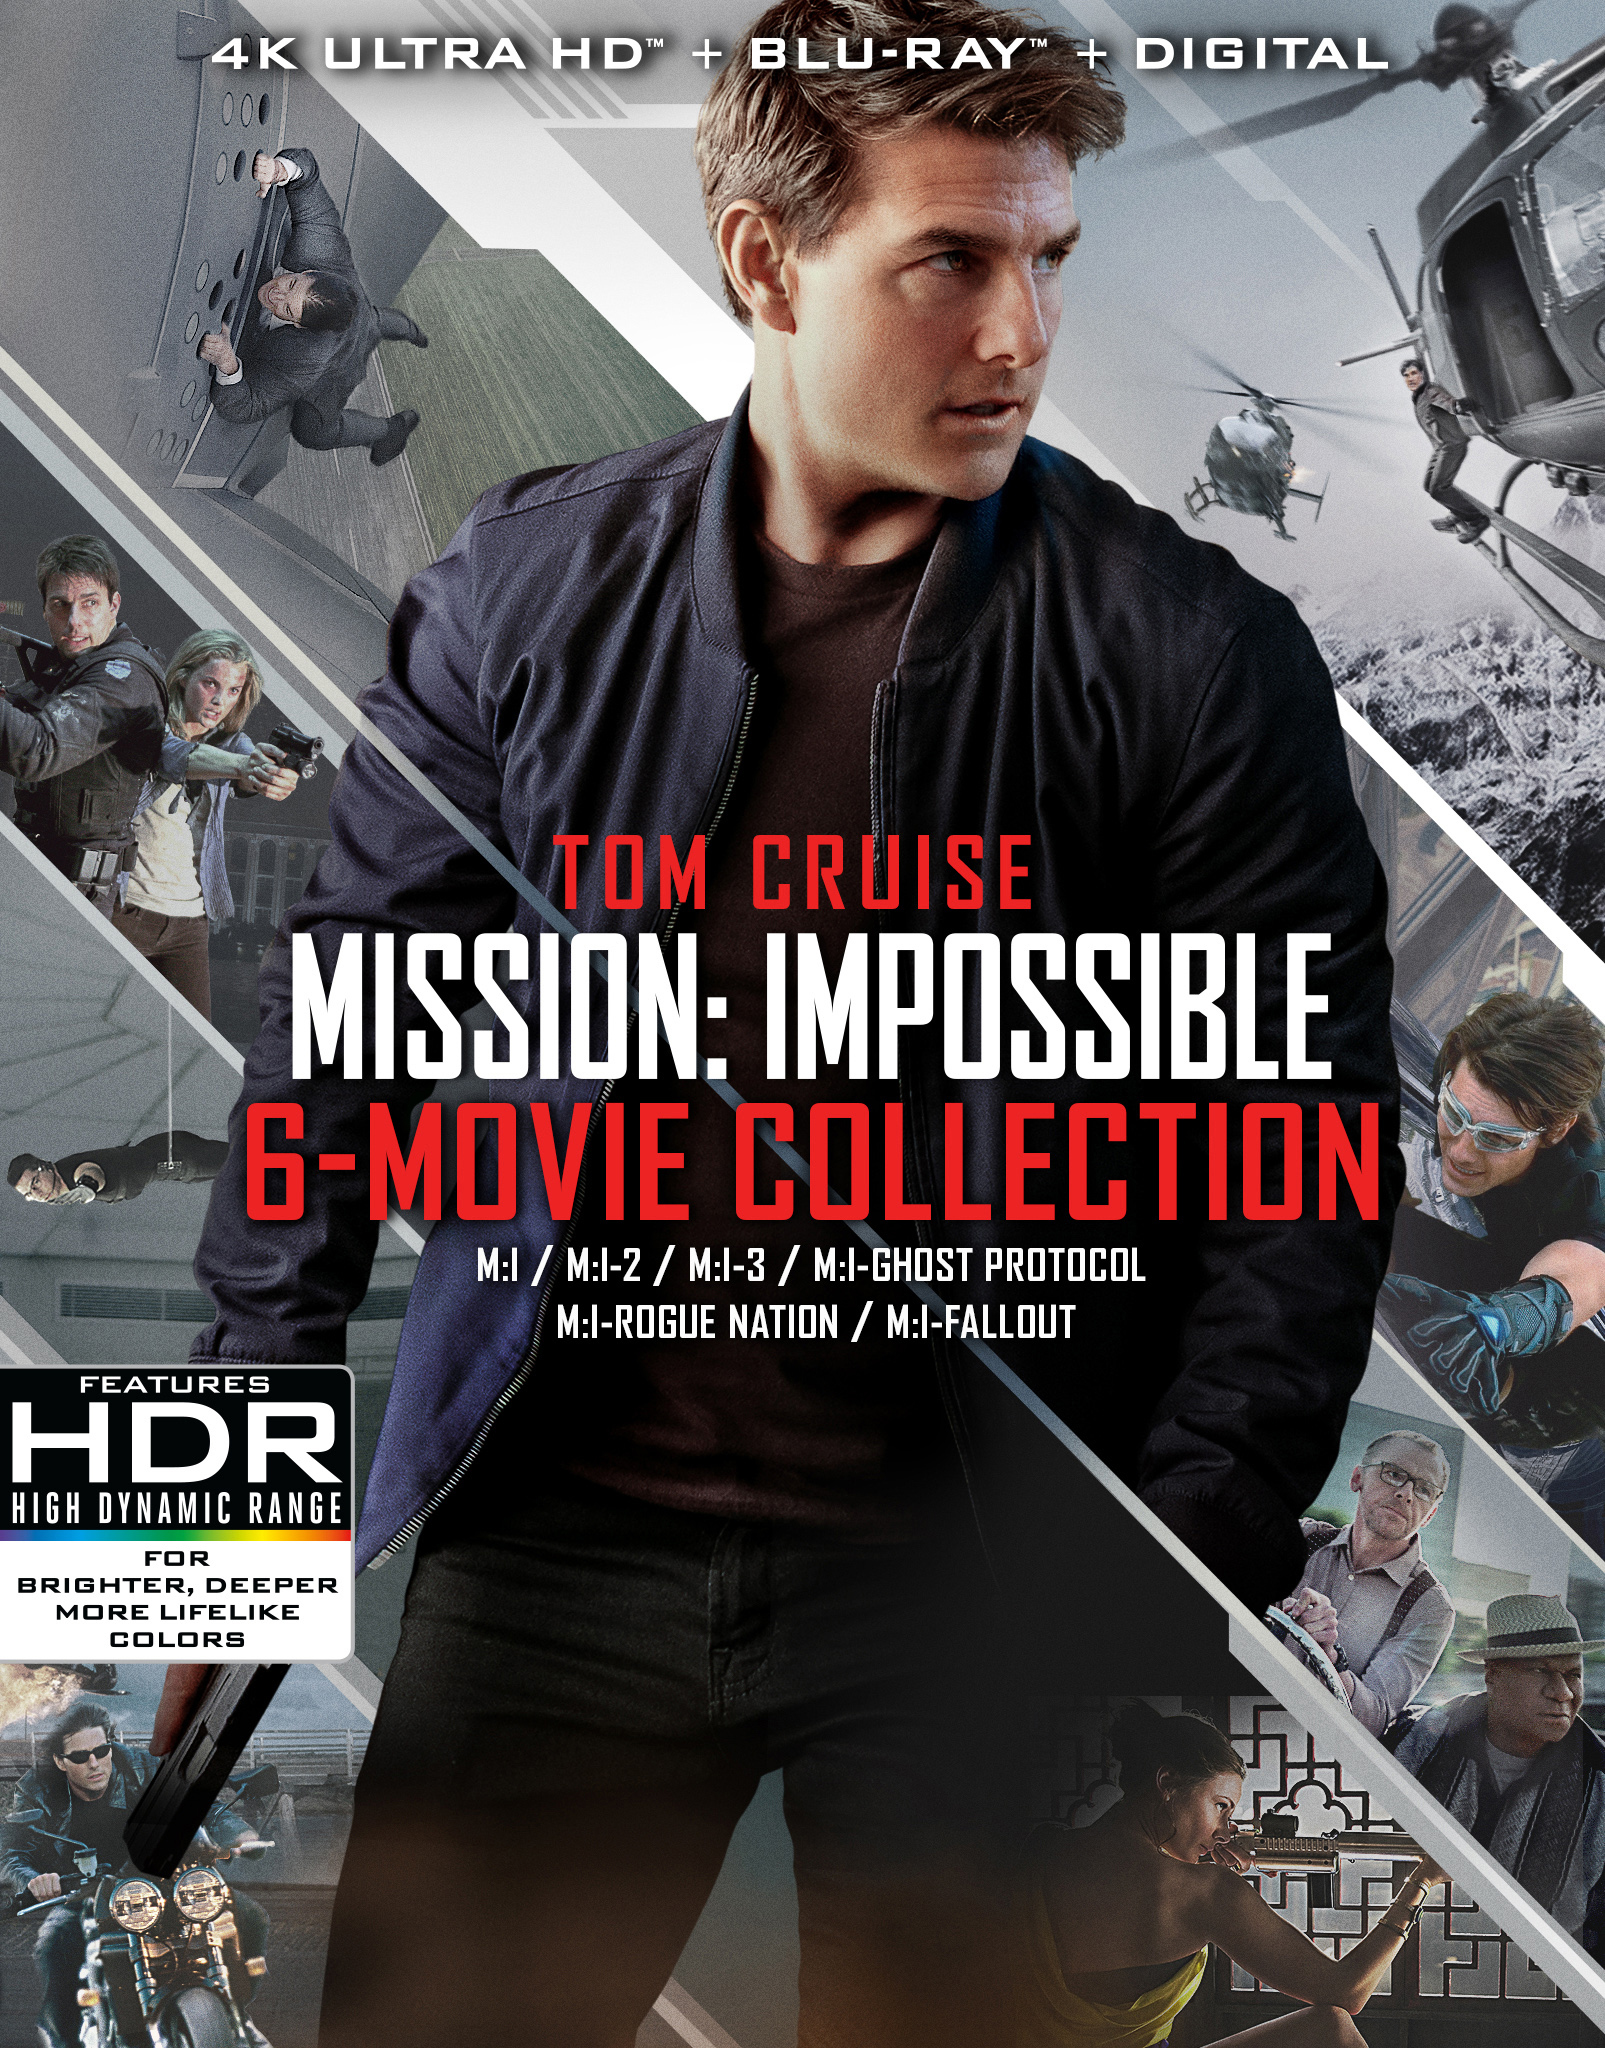 Mission: Impossible - 6 Movie Collection 4K Ultra HD Blu-ray